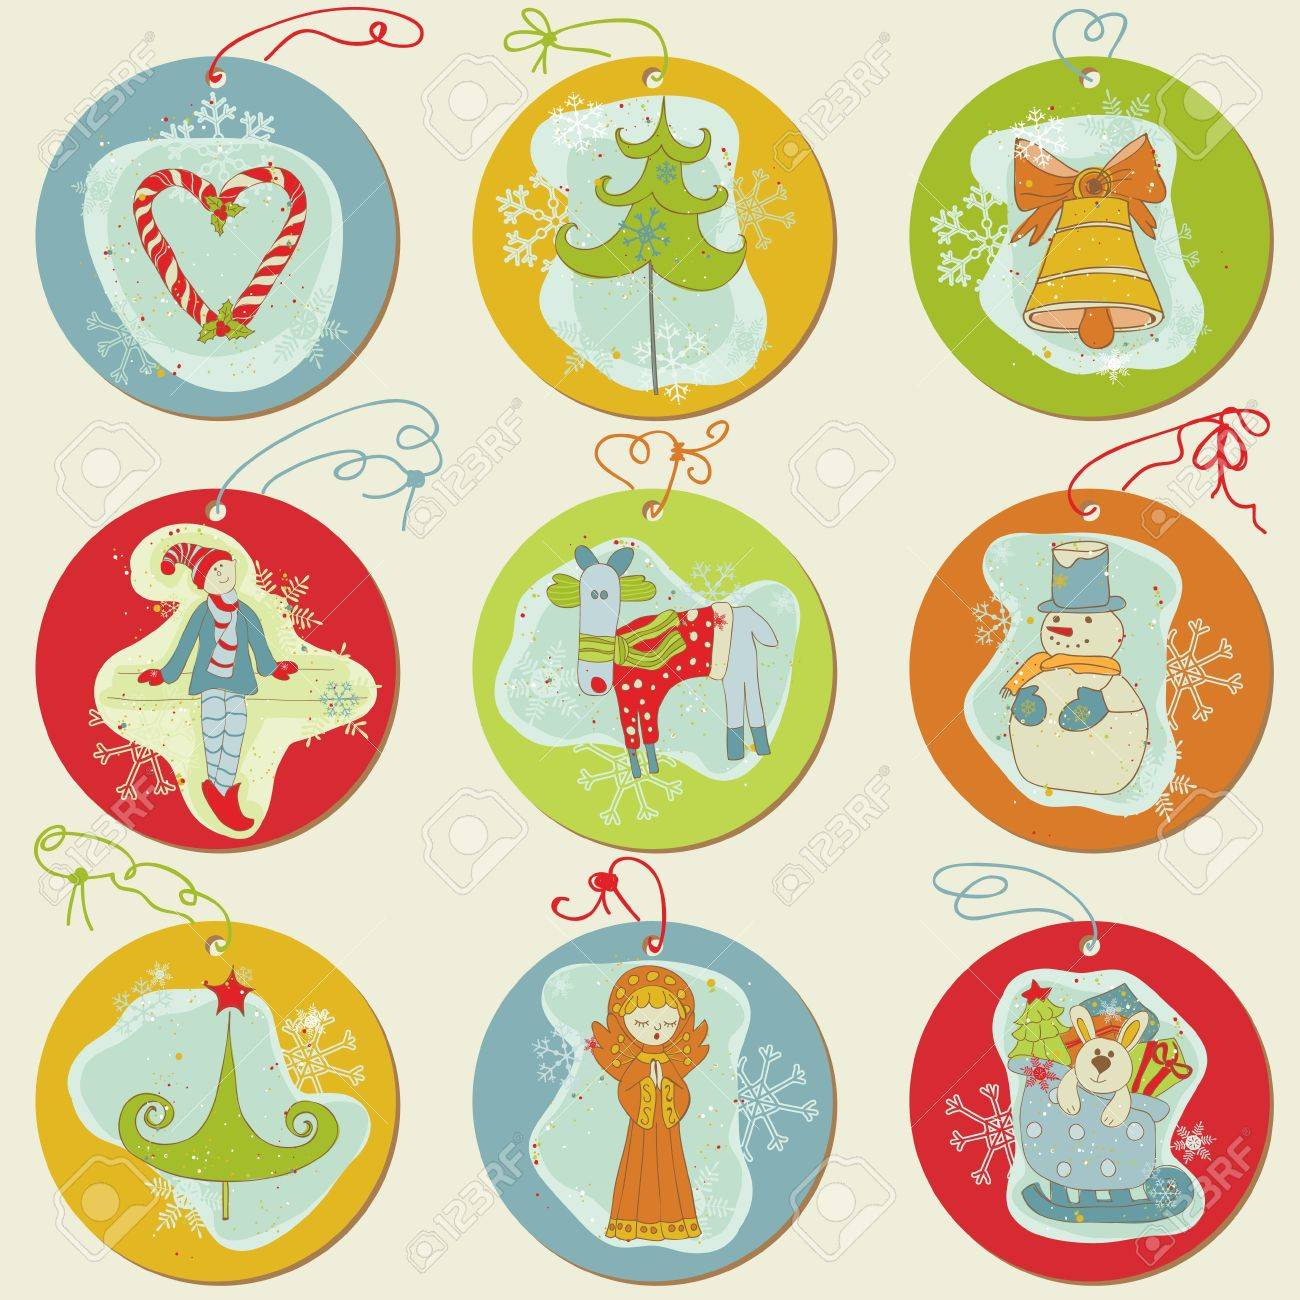 Christmas Tags - design elements for scrapbook, invitation, greetings Stock Vector - 11211340